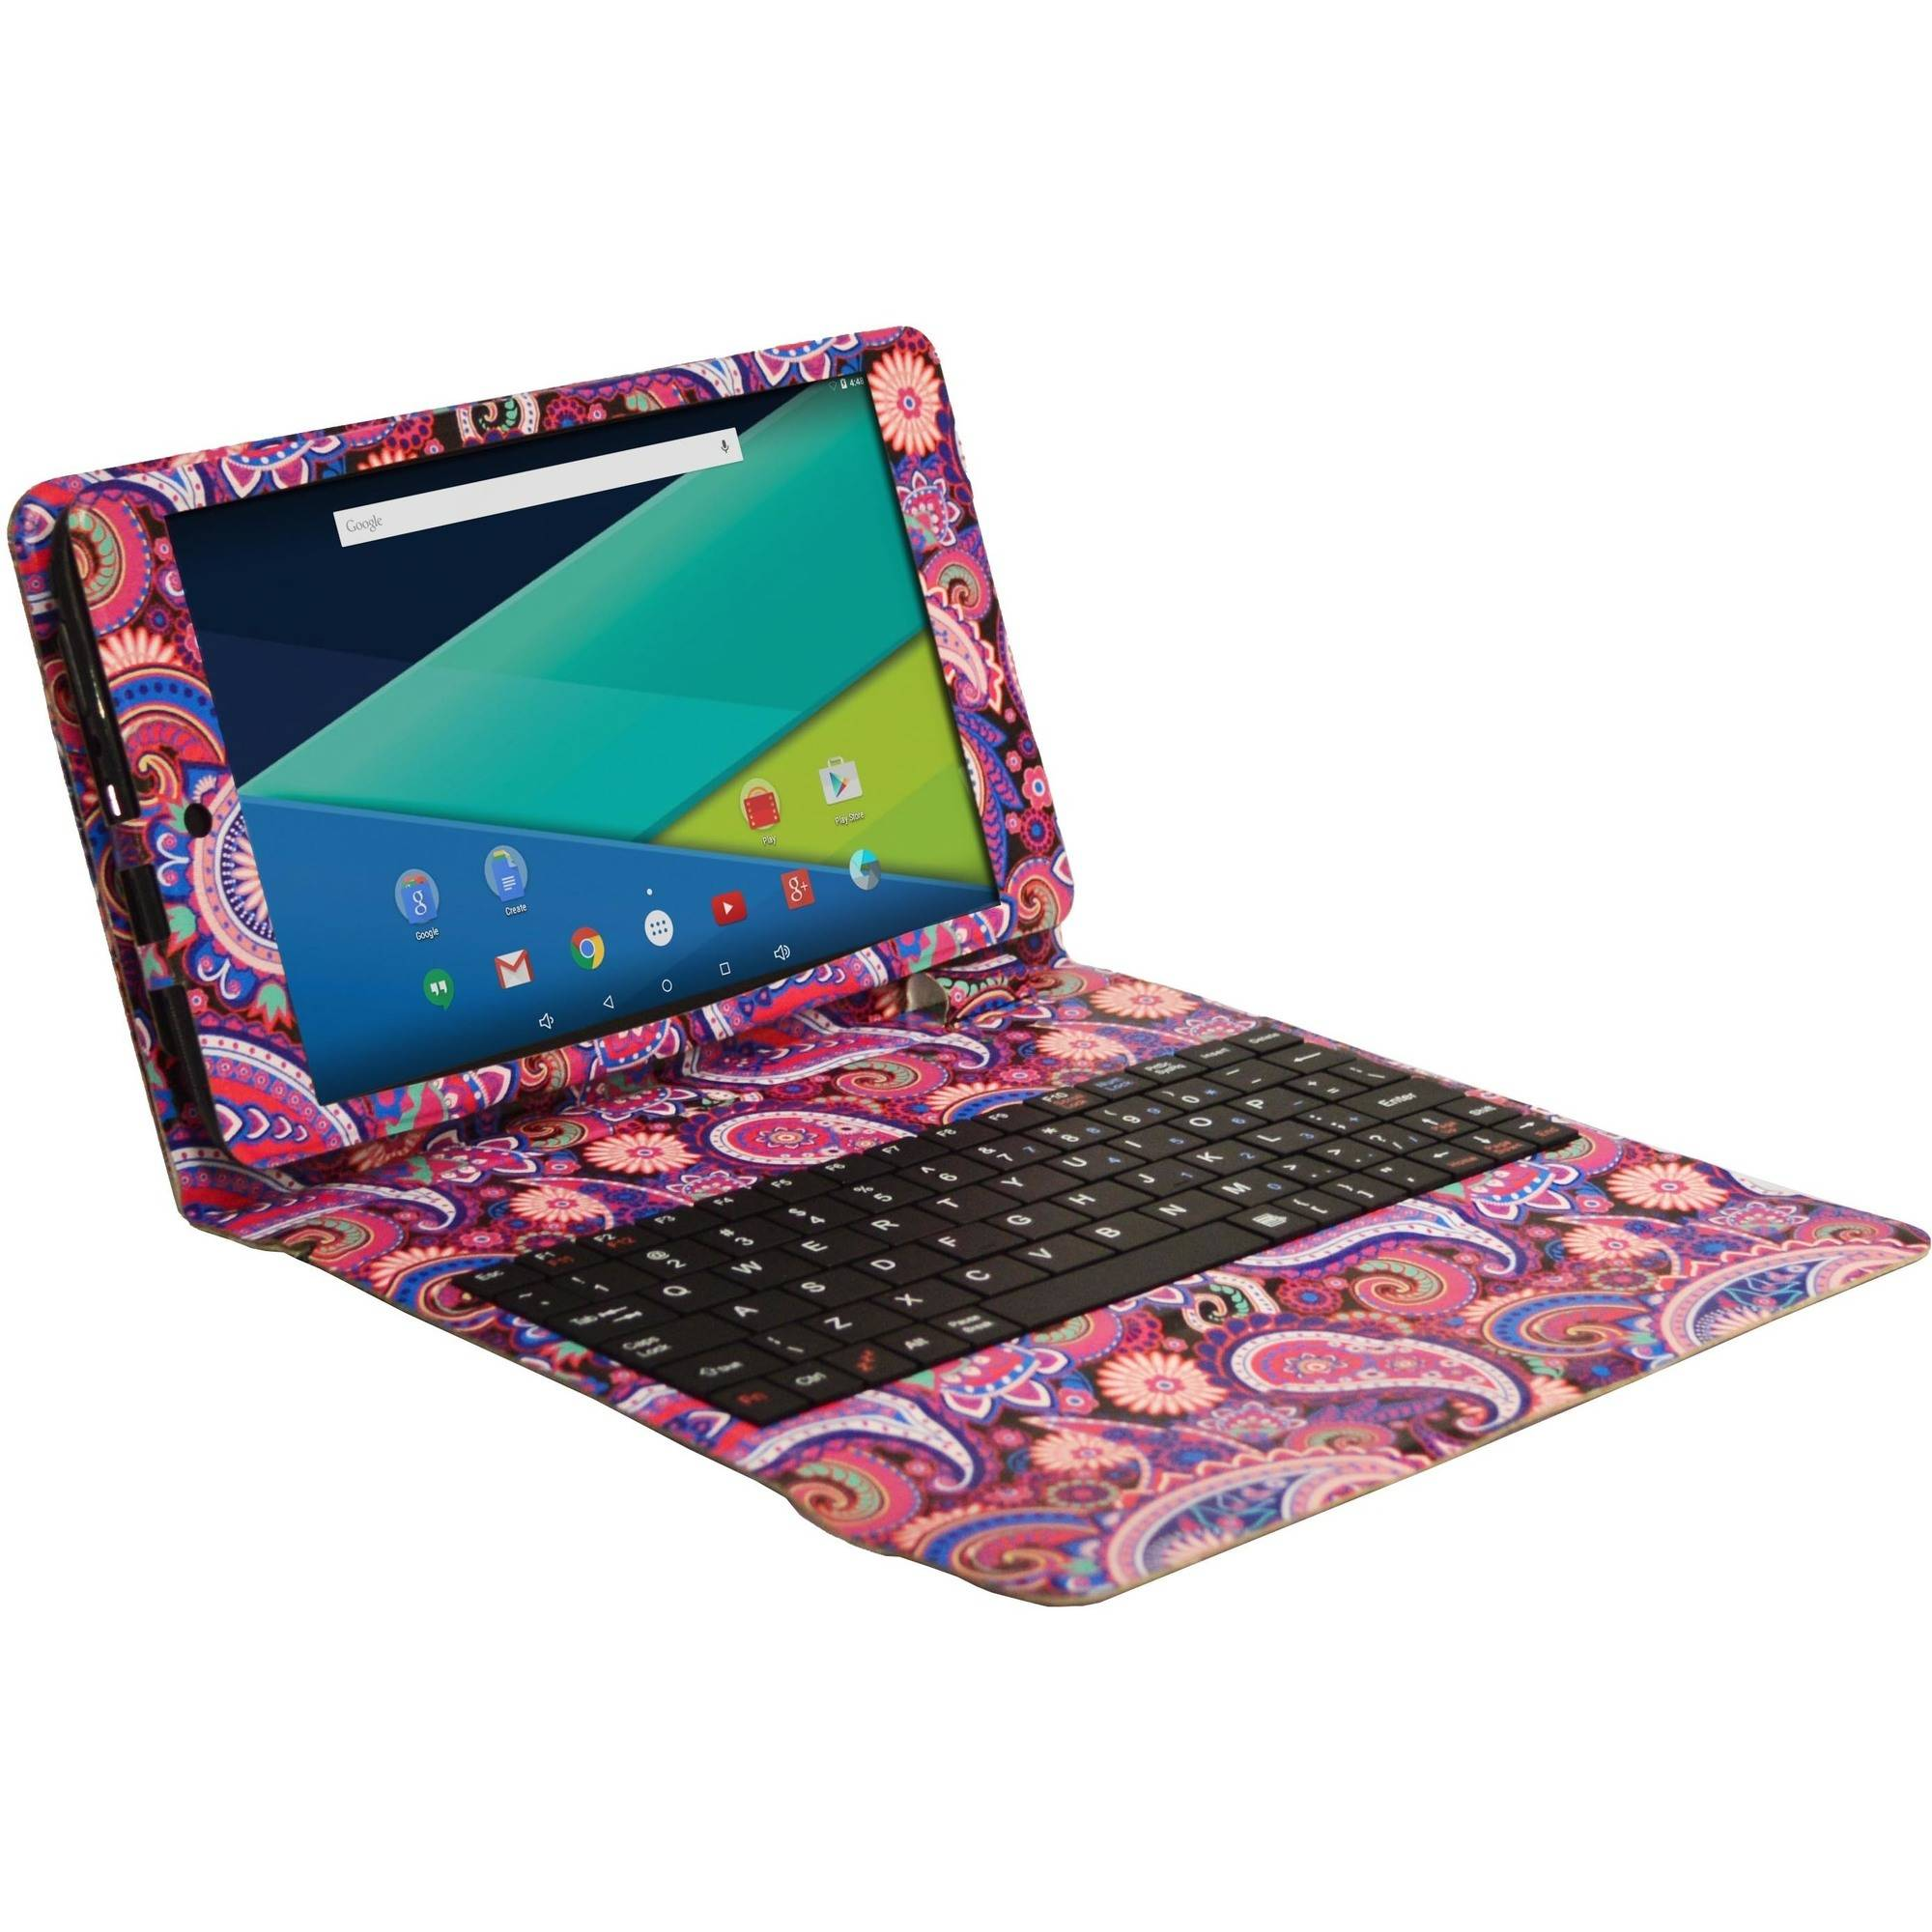 "Visual Land Prestige  8"" IPS Quad Core Intel 64 Bit Tablet 16GB includes Designer Keyboard Case"